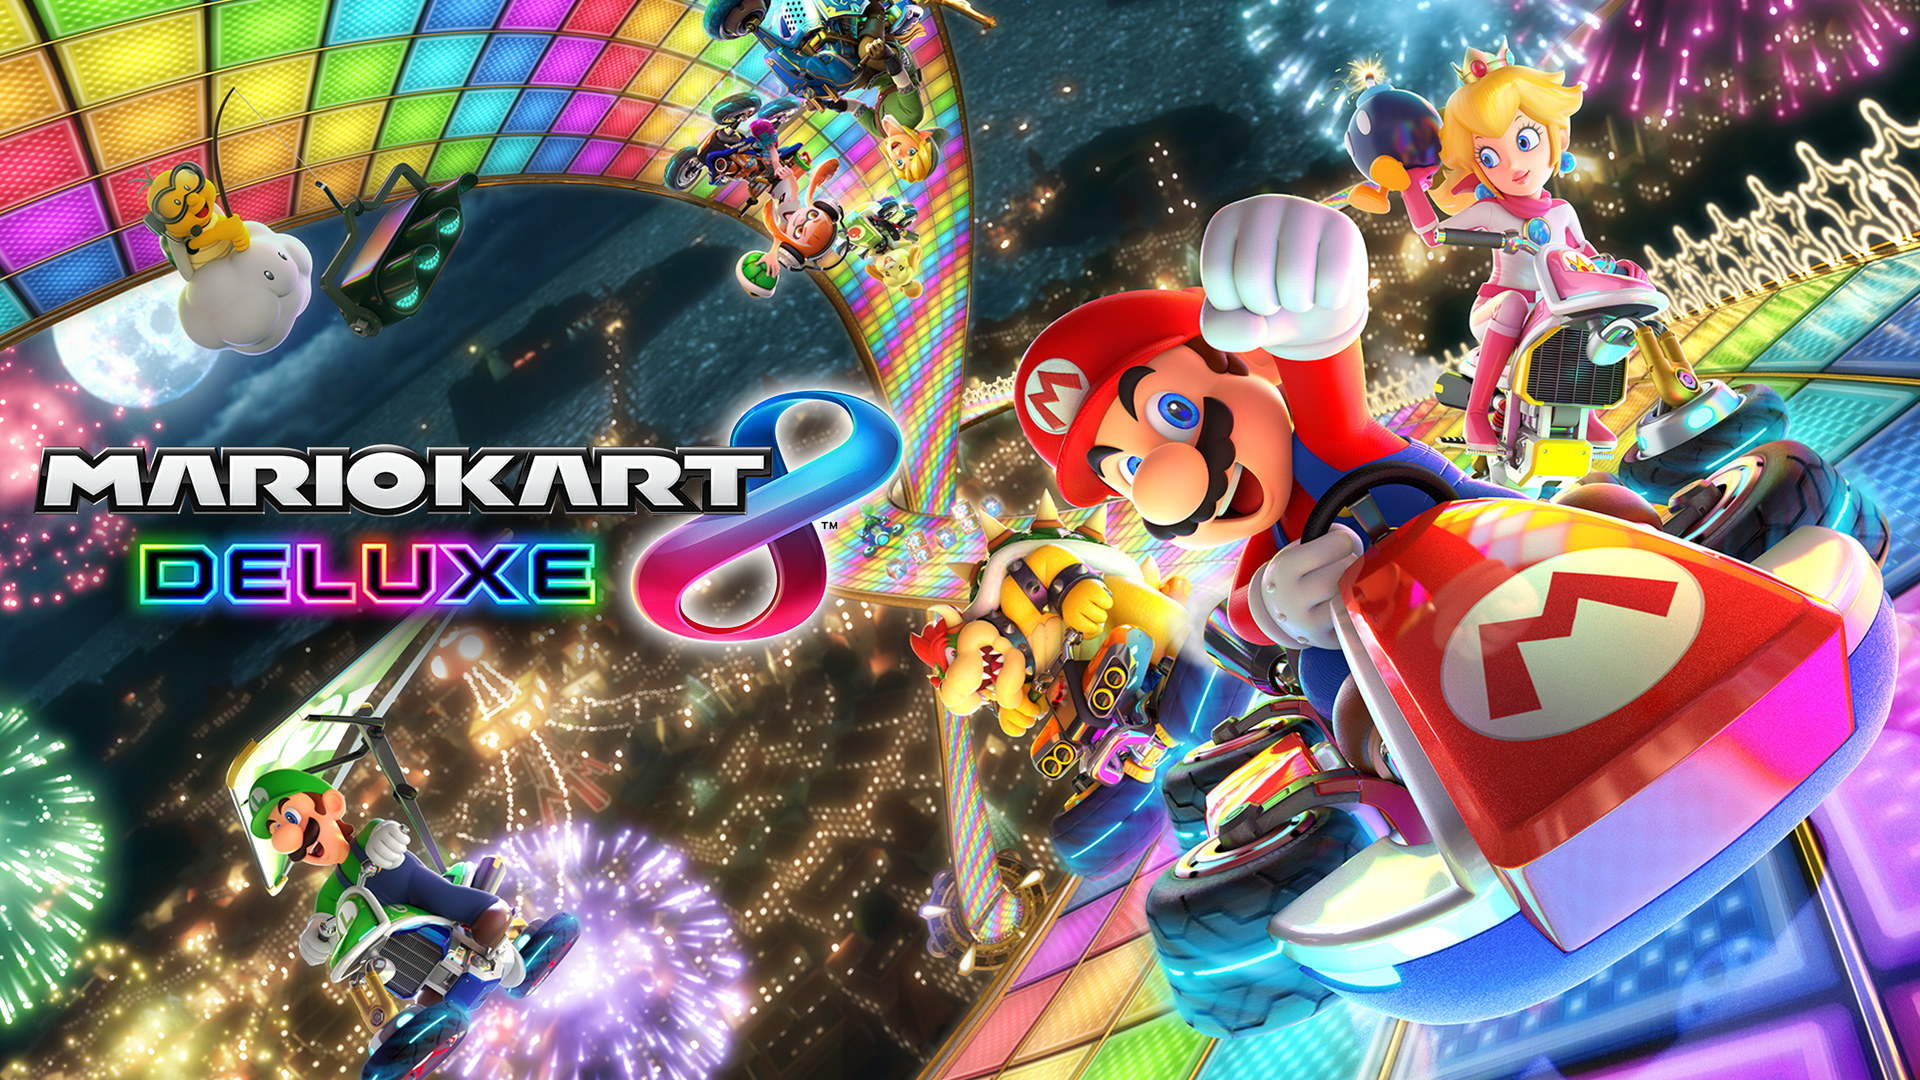 a promotional screenshot of he mario kart game featuring mario, luigi, and princess peach in race cars